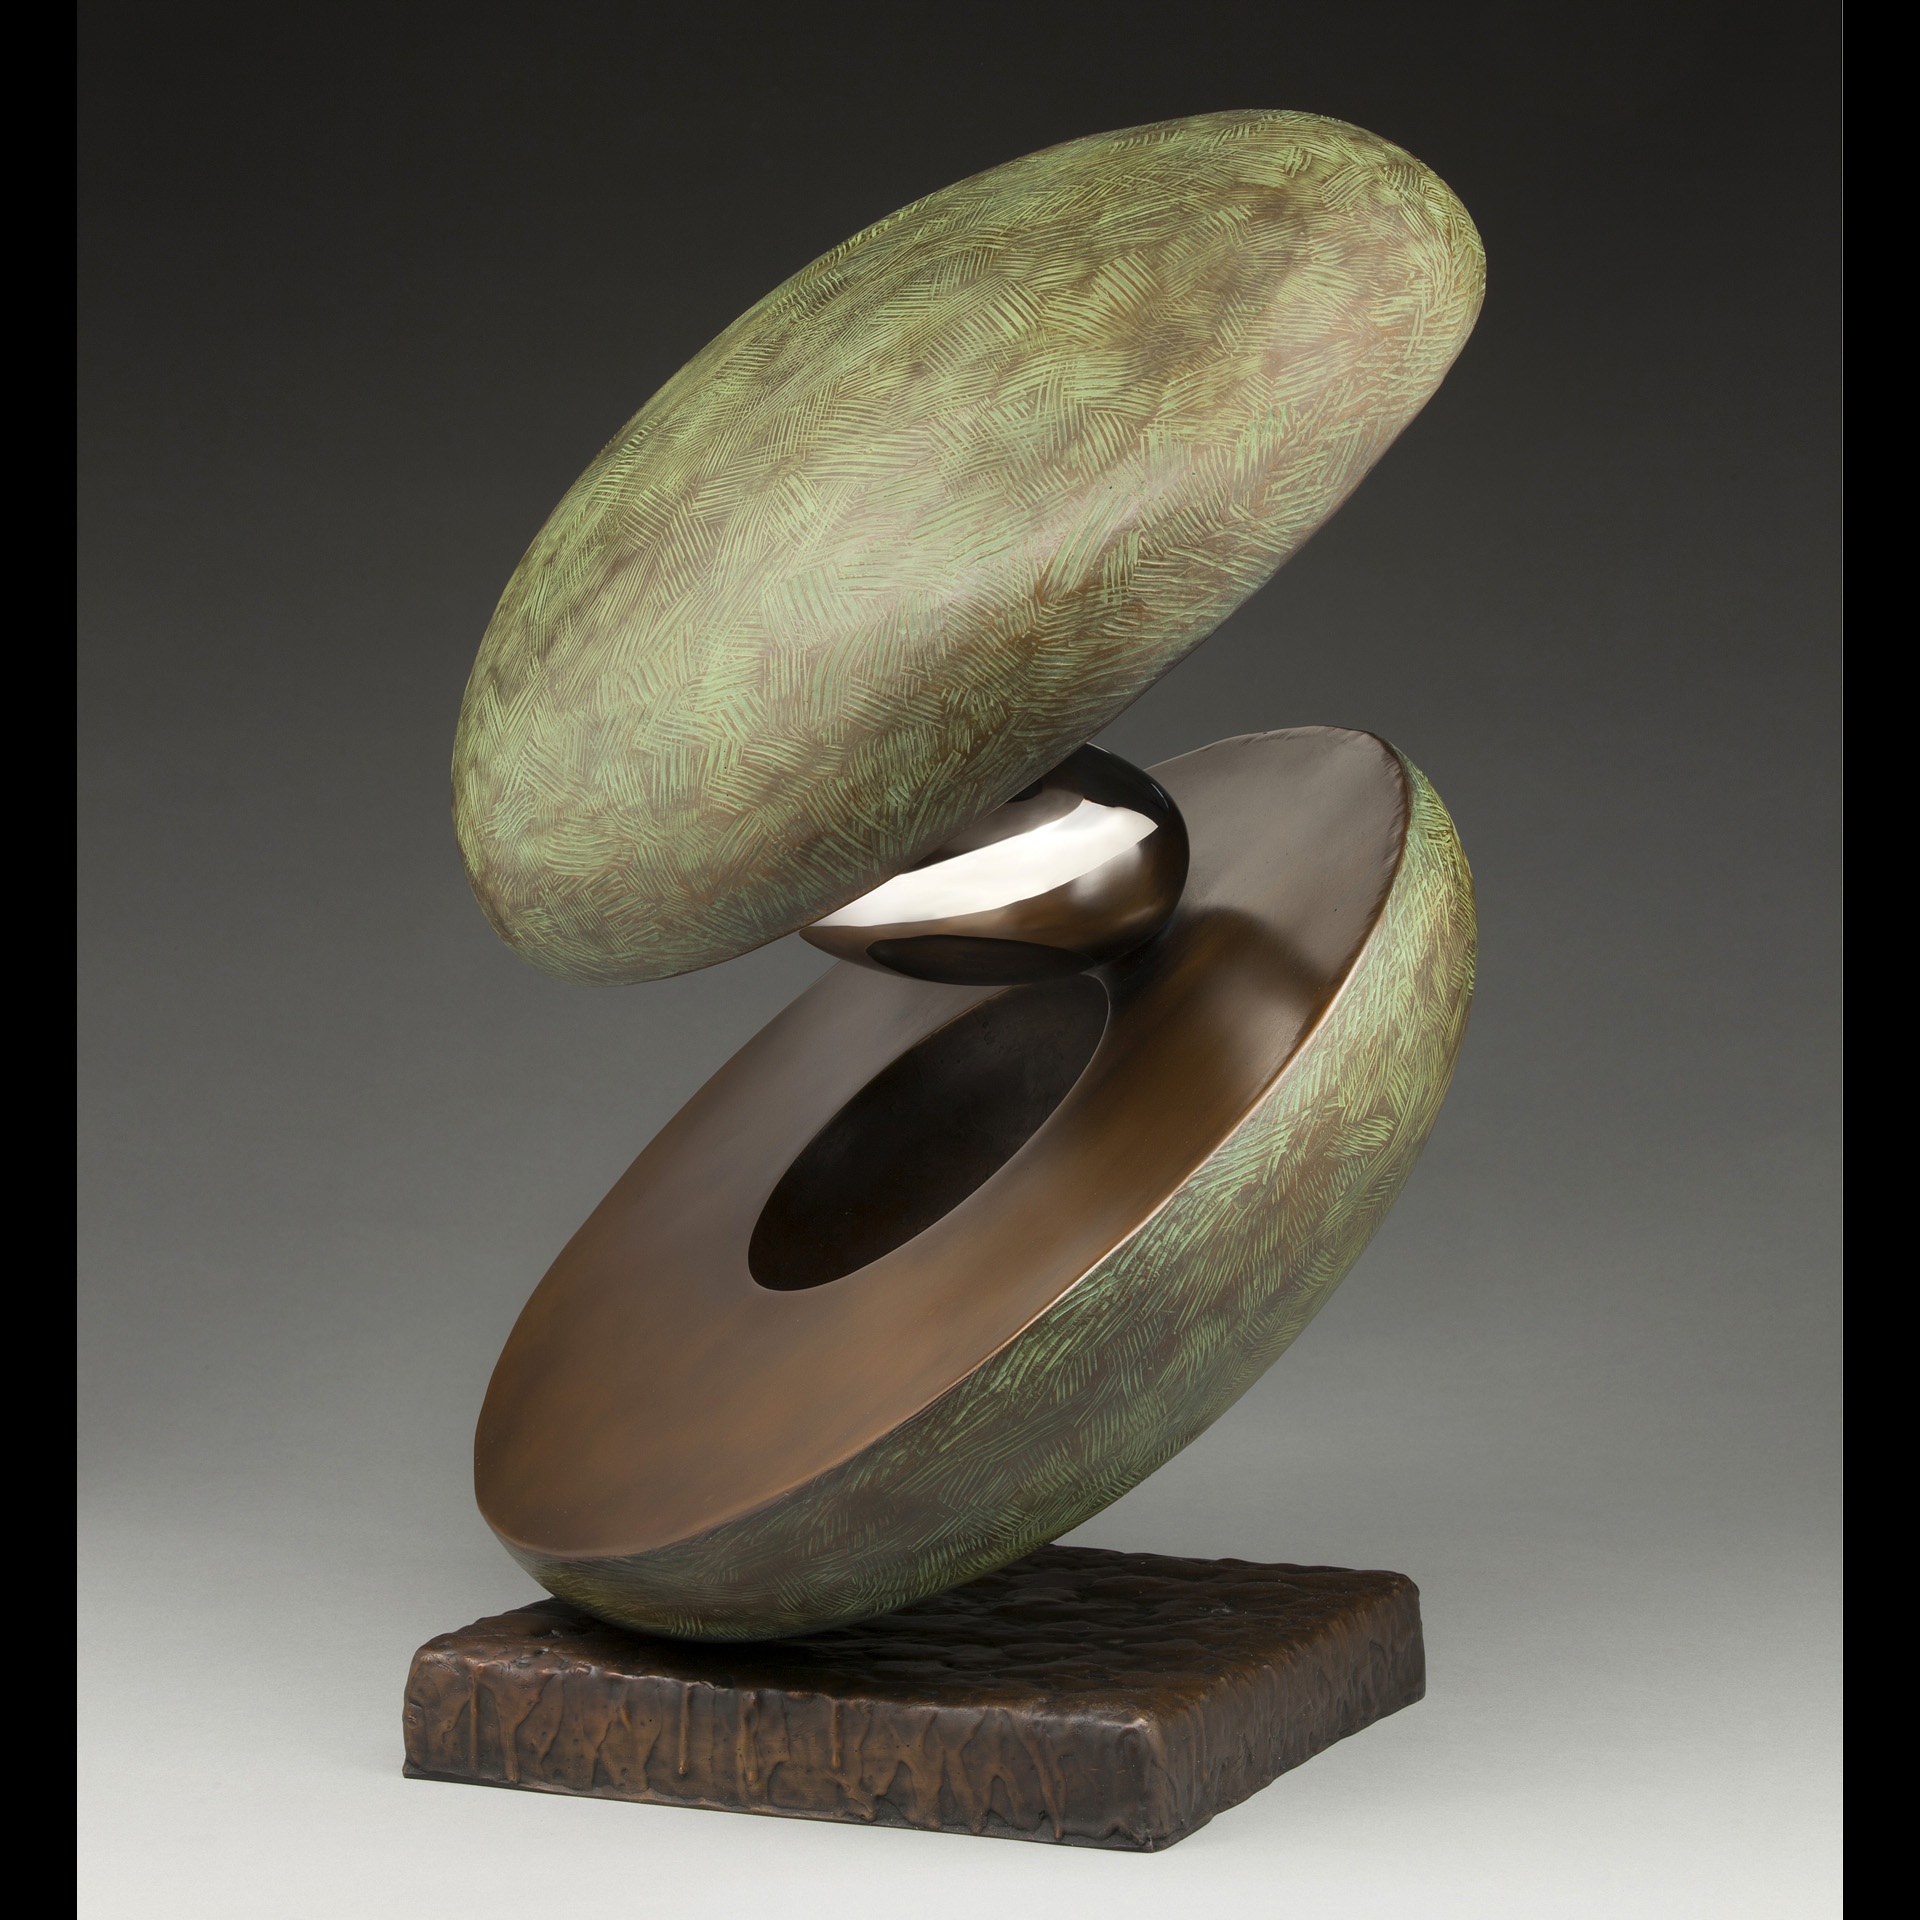 Ted Schaal Artwork: orbacado | Original Sculpture Bronze ...